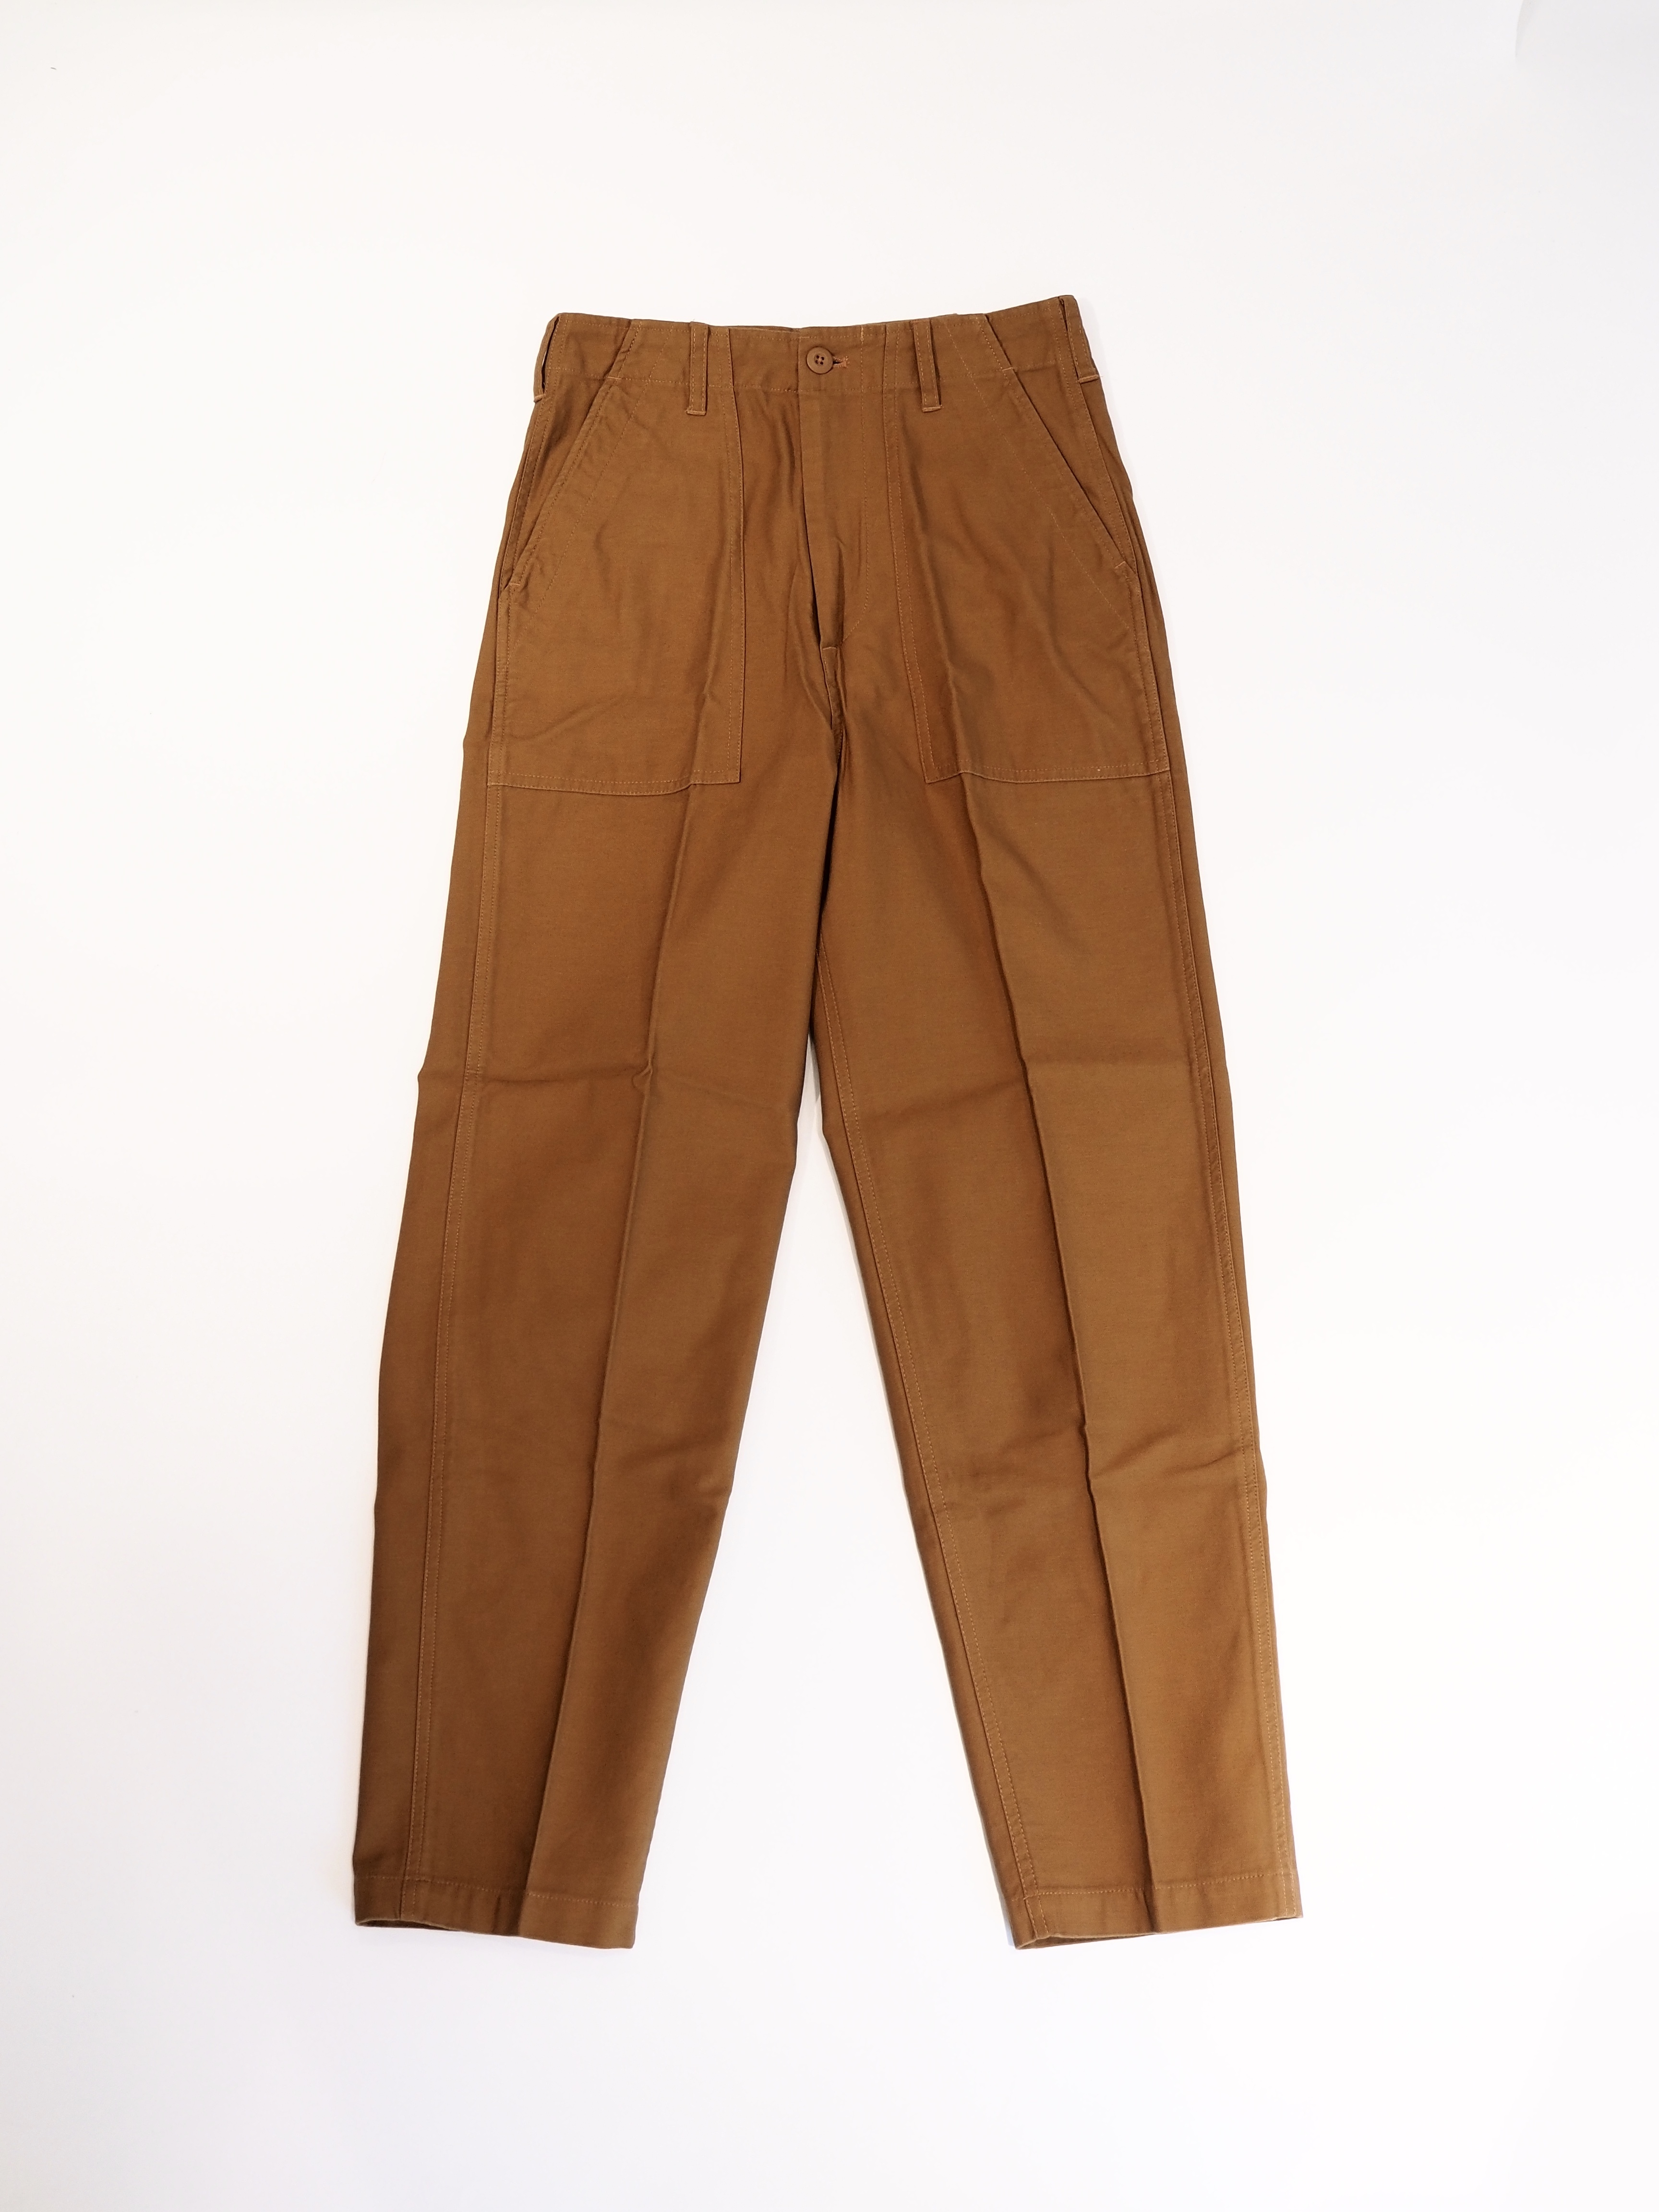 【ENLIGHTENMENT】BAKER PANTS